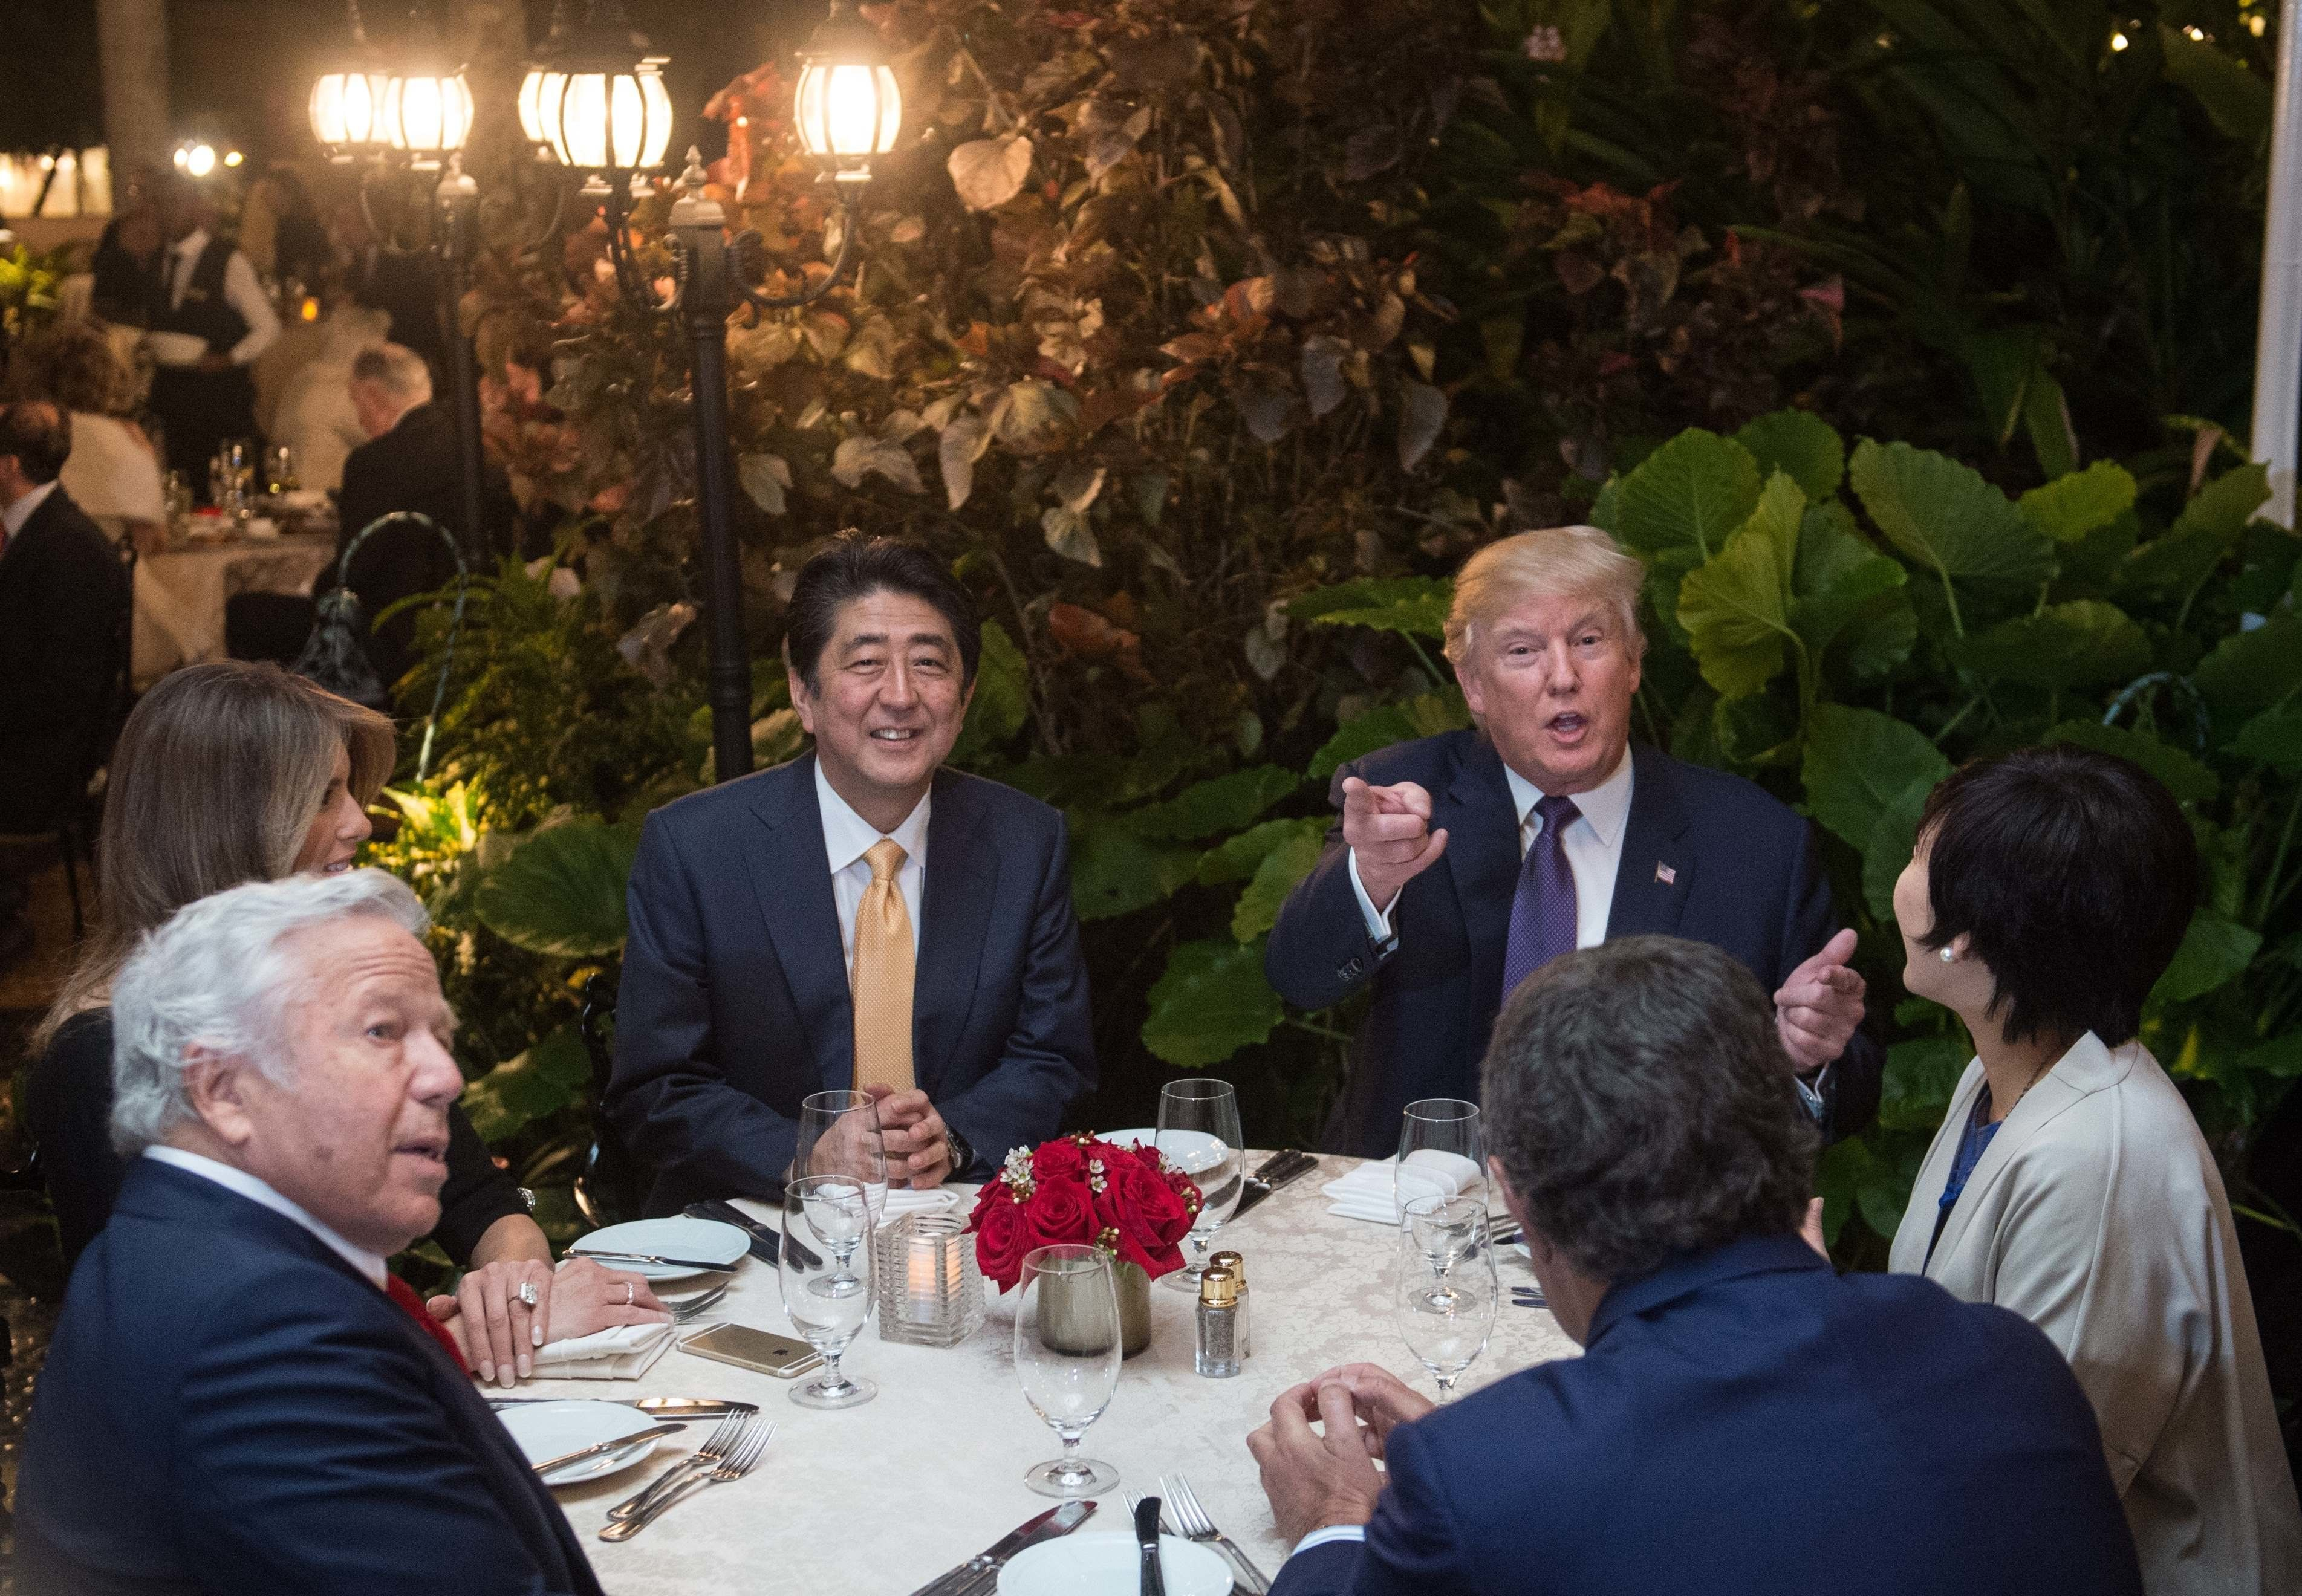 The Trumps, Japanese Prime Minister Shinzo Abe, his wife Akie Abe, and New England Patriots owner Robert Kraft had